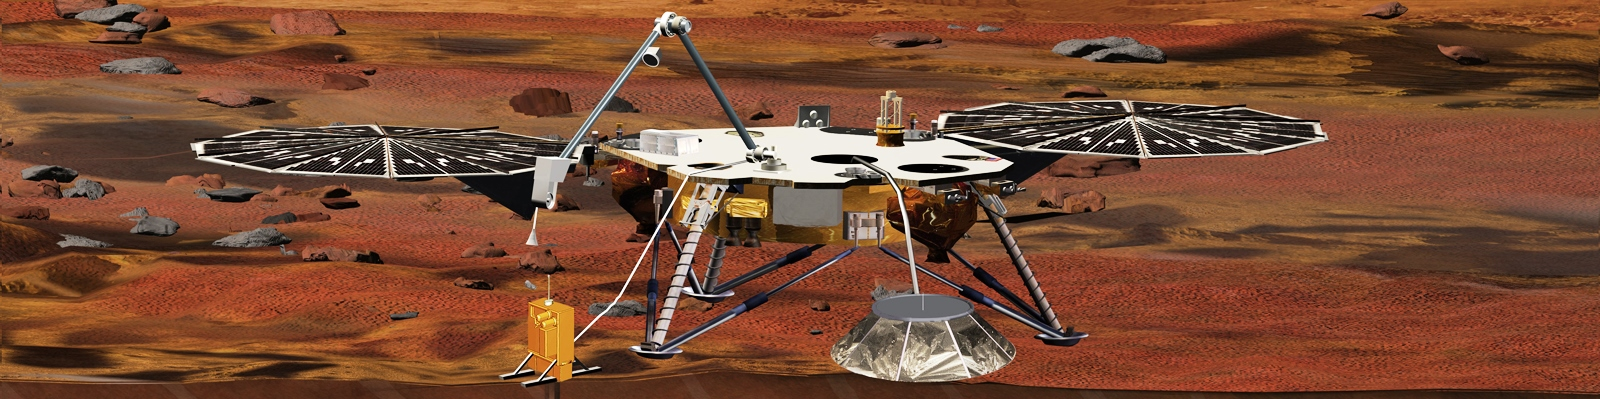 NASA InSight mission artist depiction posted on SpaceFlight Insider